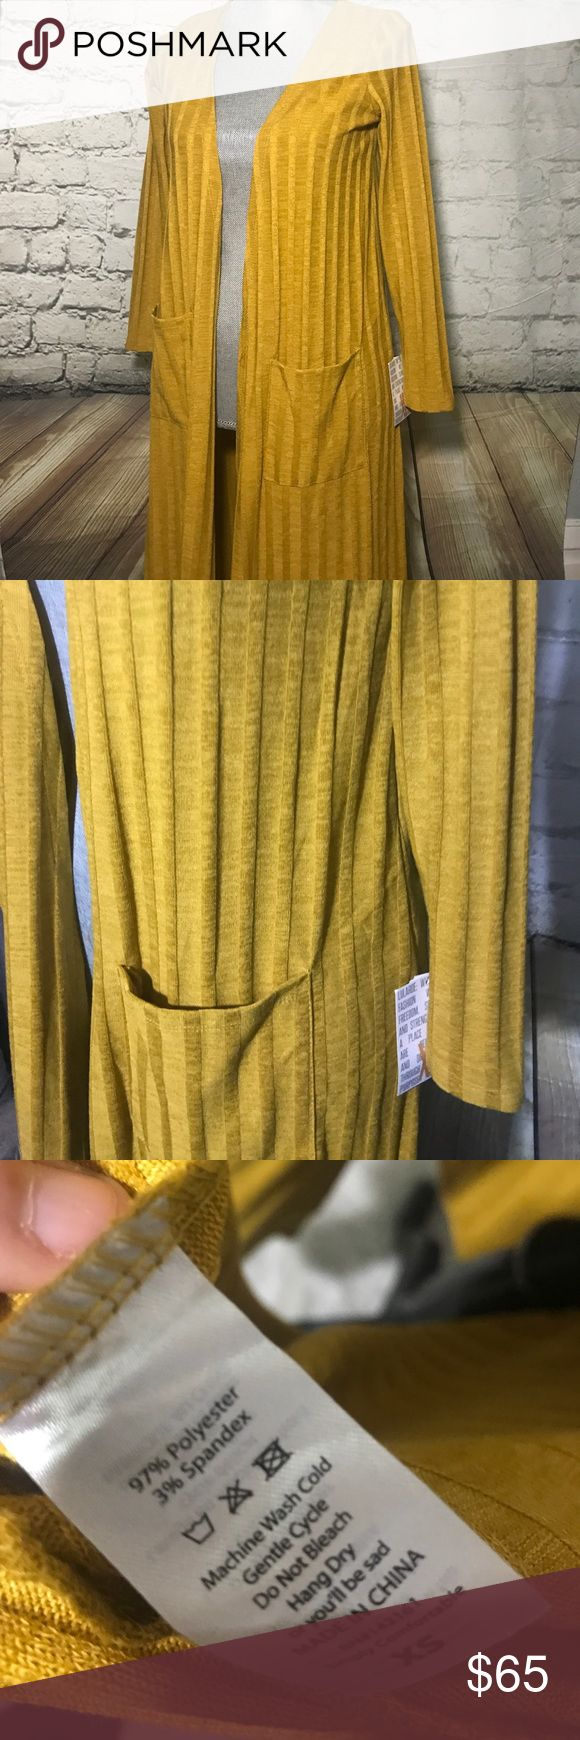 LulaRoe Sarah cardigan Beautiful mustard colored Sarah by LulaRoe. Brand new with tags. Price is firm. LuLaRoe Sweaters Cardigans